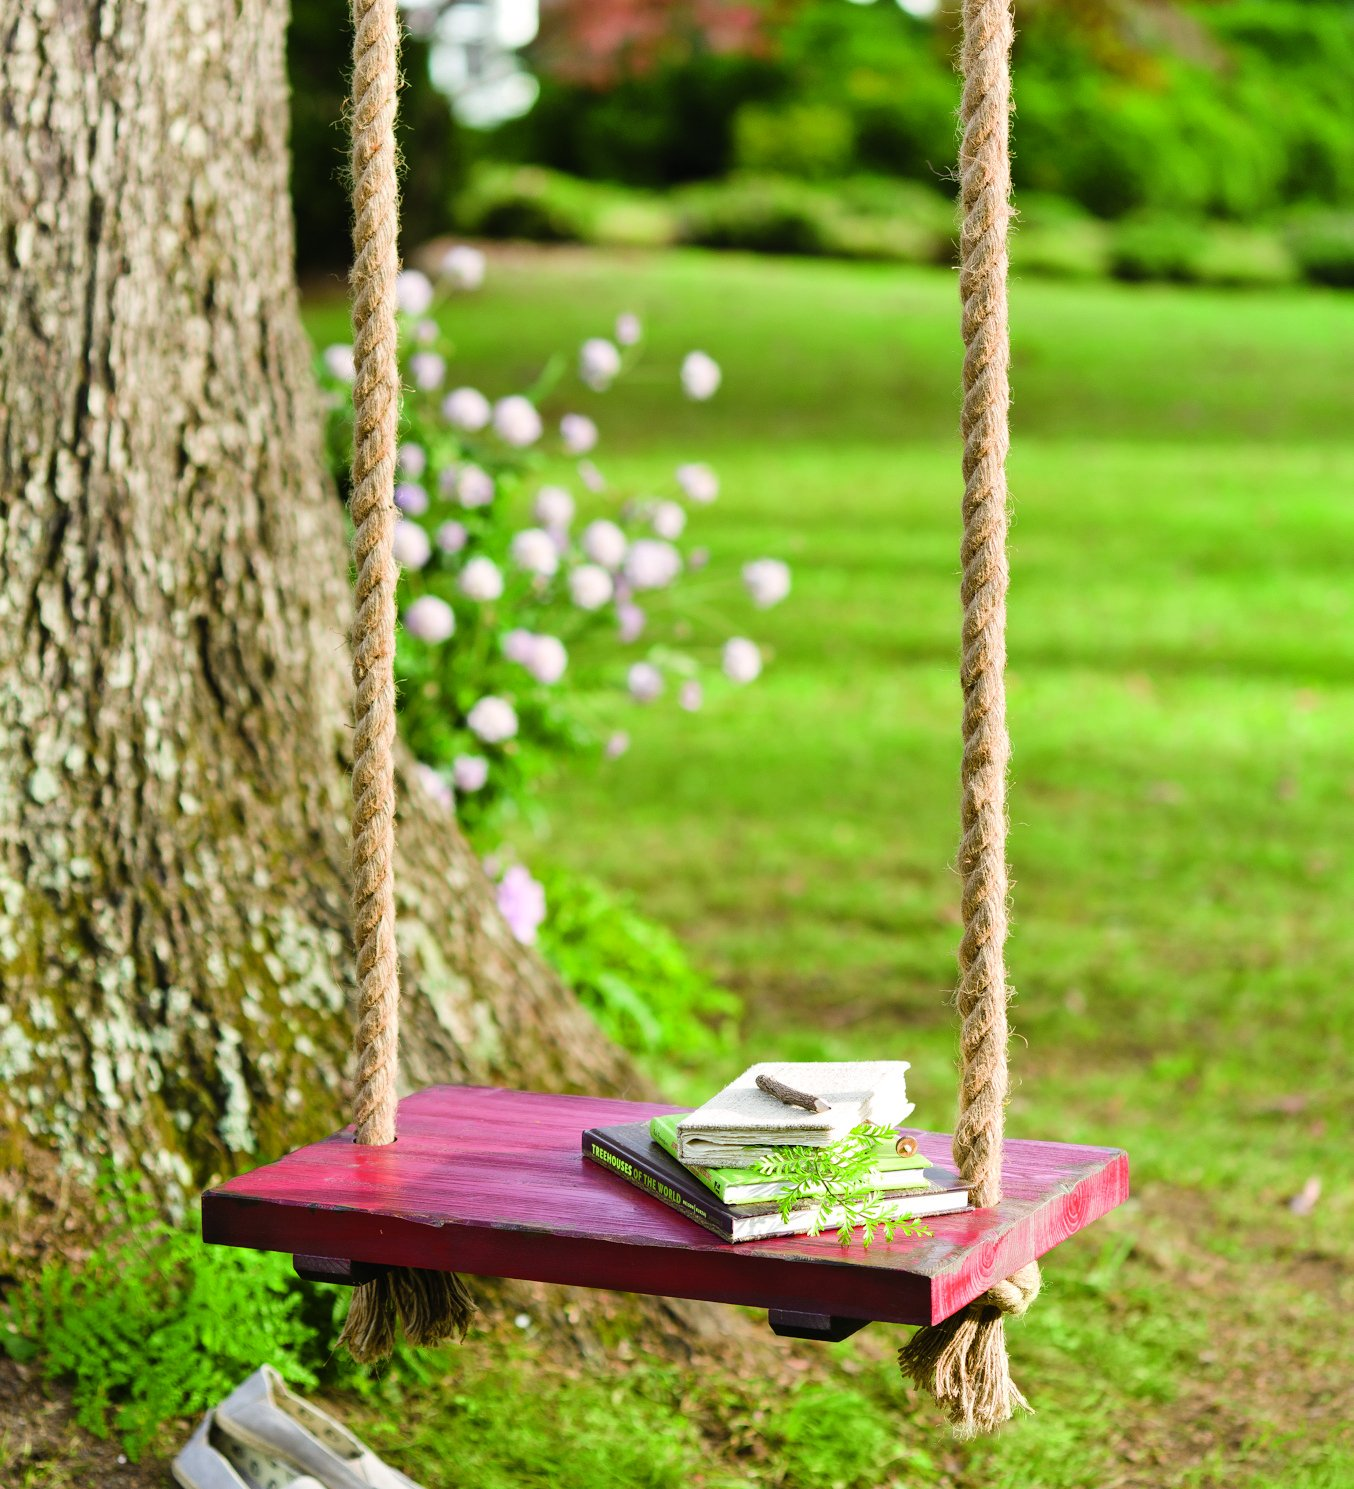 Amazoncom Plow Hearth Durable Hanging Rope Tree Swing with